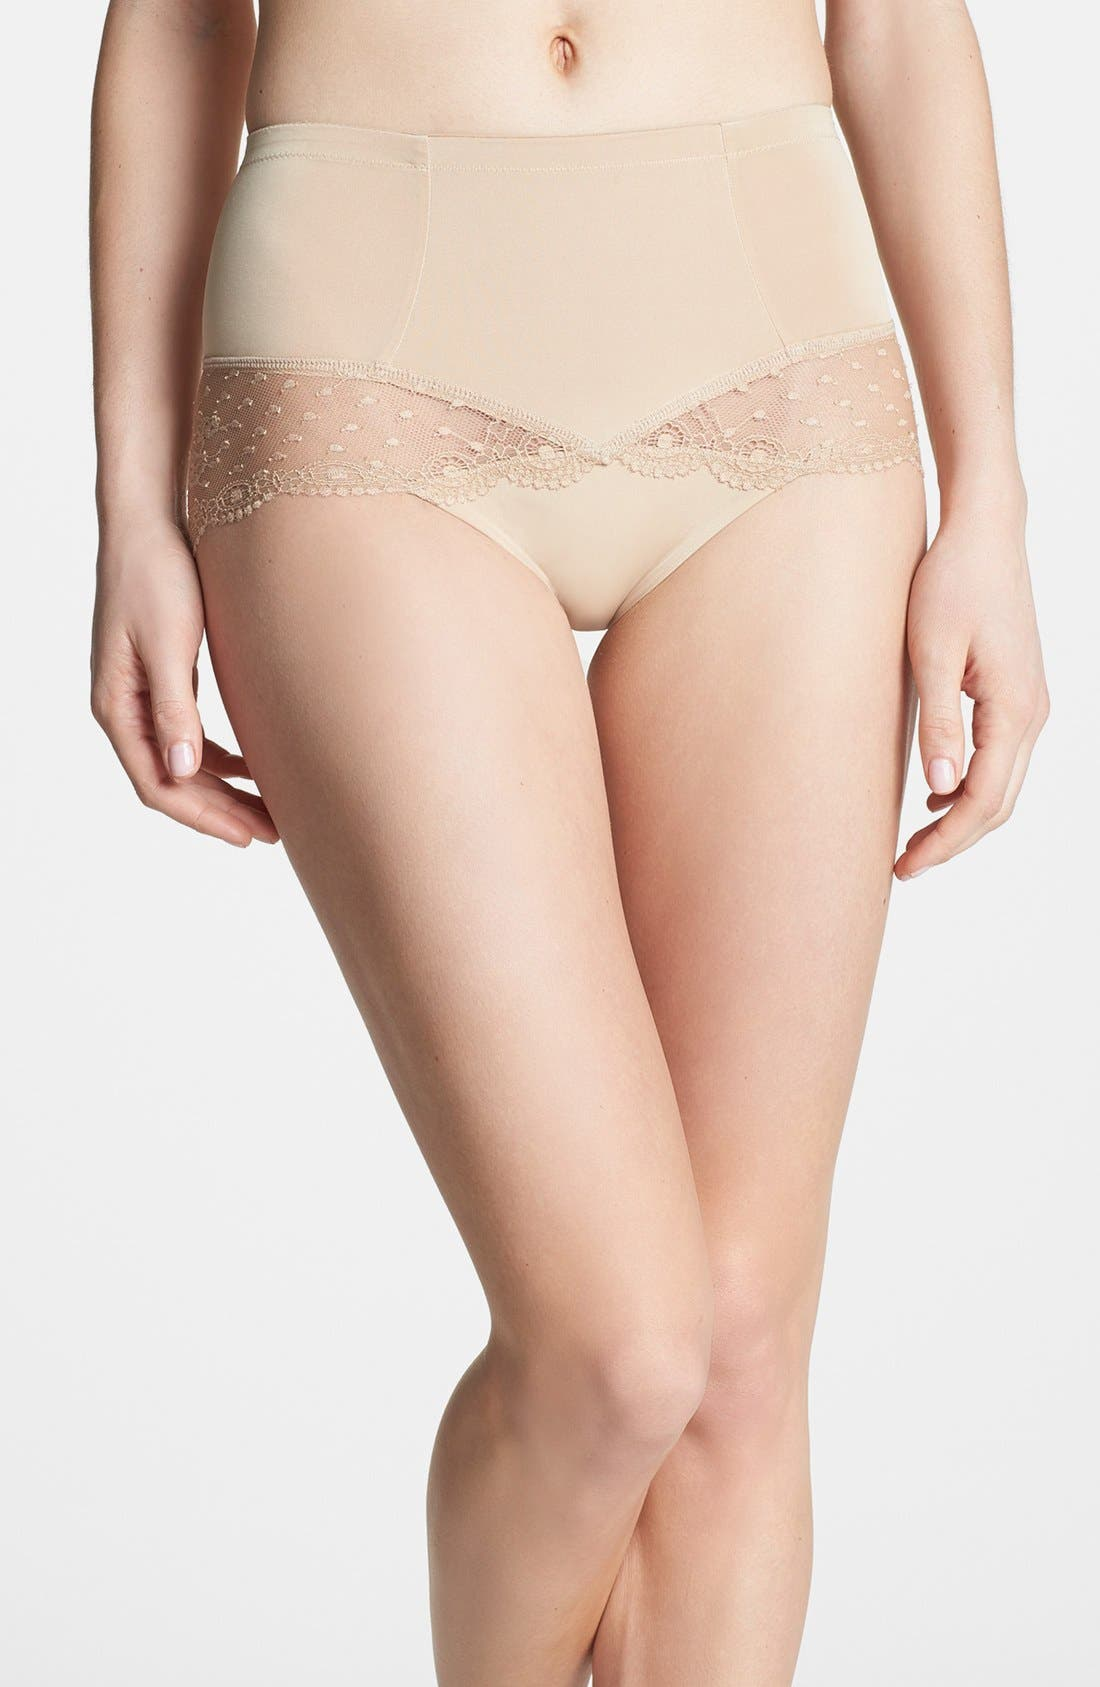 Alternate Image 1 Selected - DKNY 'Lace Curves' Shaping Briefs (Online Only) (2 for $36)